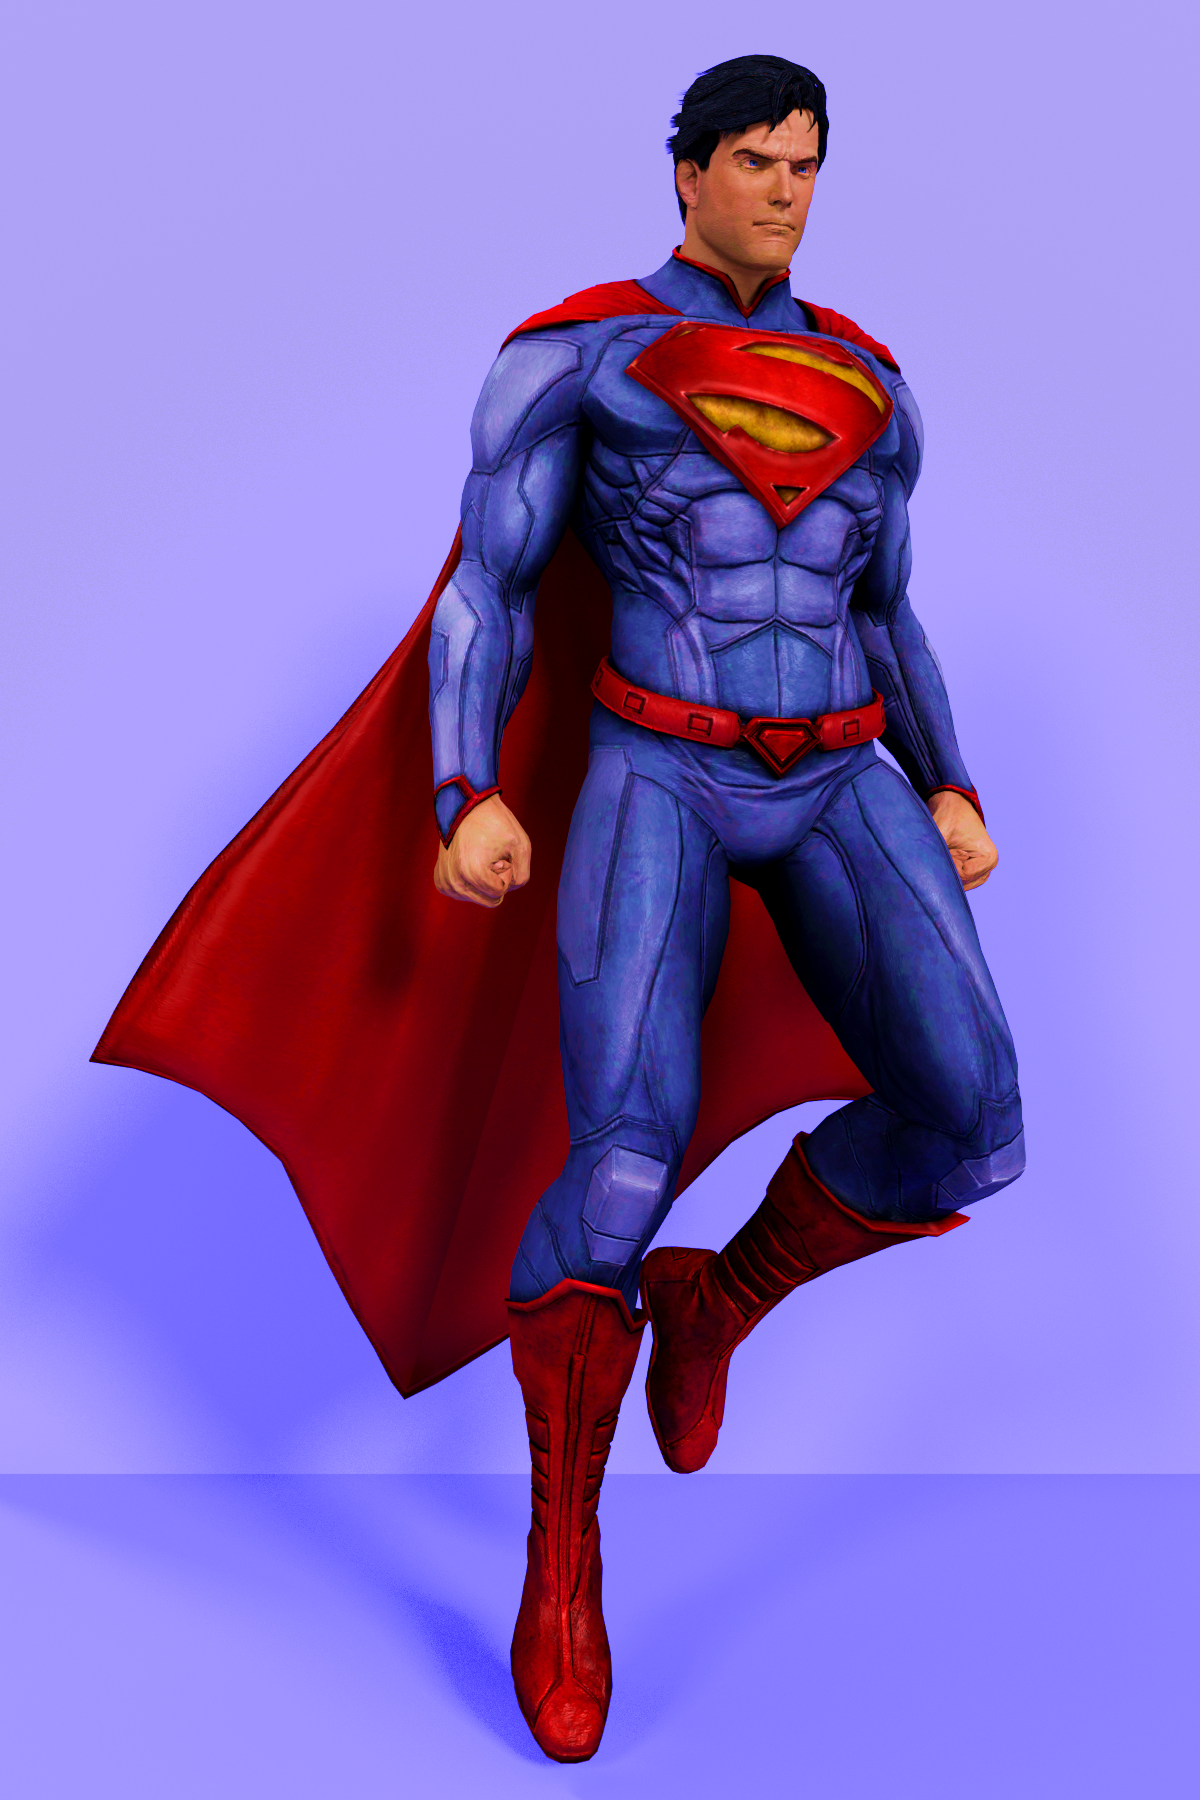 Took a shot at drawing the new Superman outfit : DCcomics